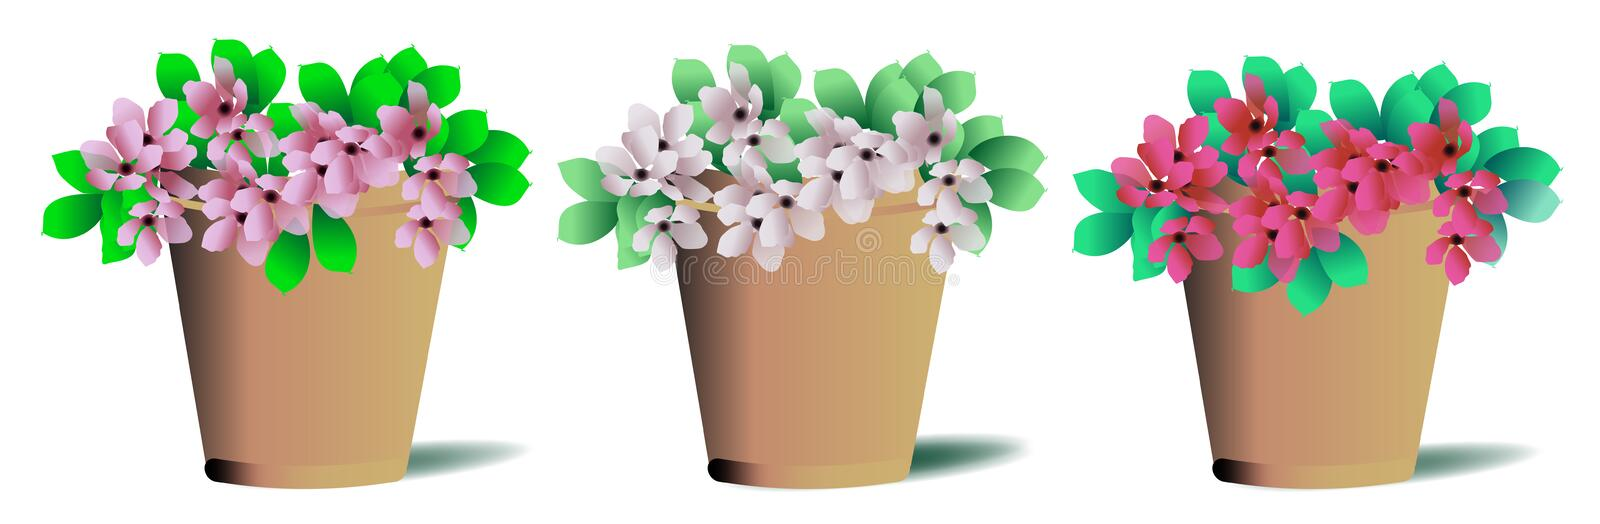 Download Potted plants stock photo. Image of purple, cute, nature - 34240766